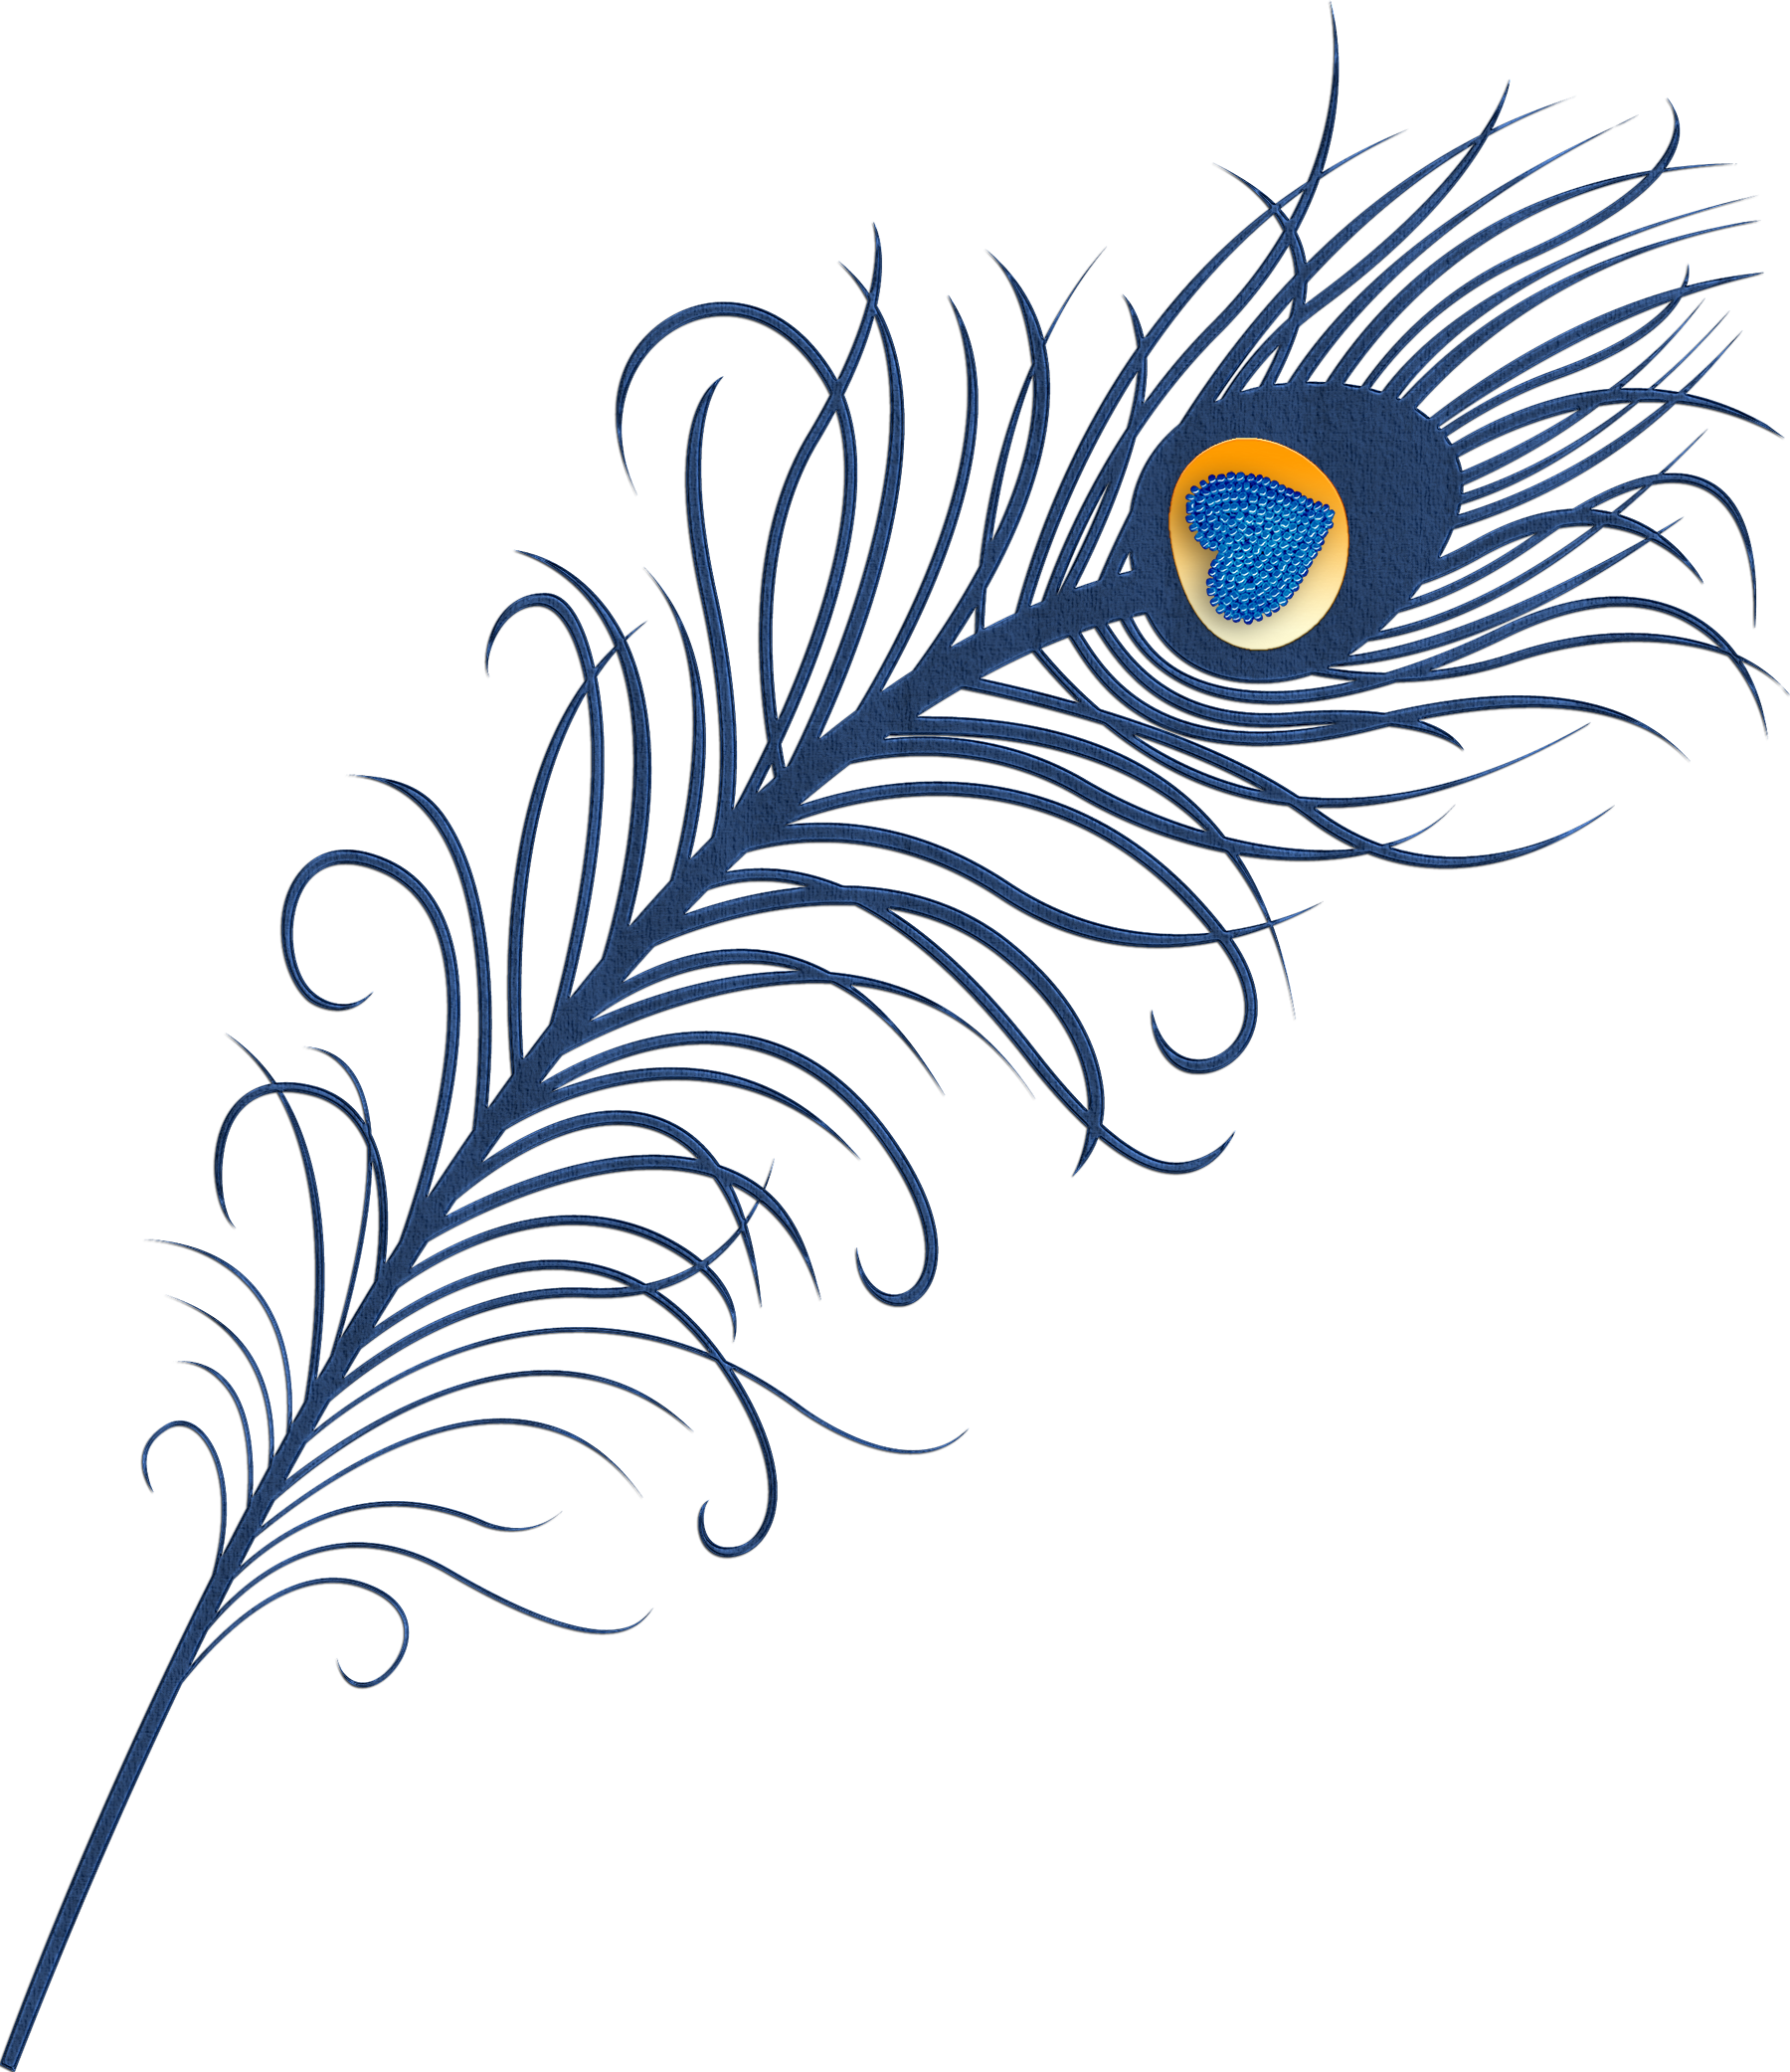 Peacock at getdrawings com. Feather clipart animal